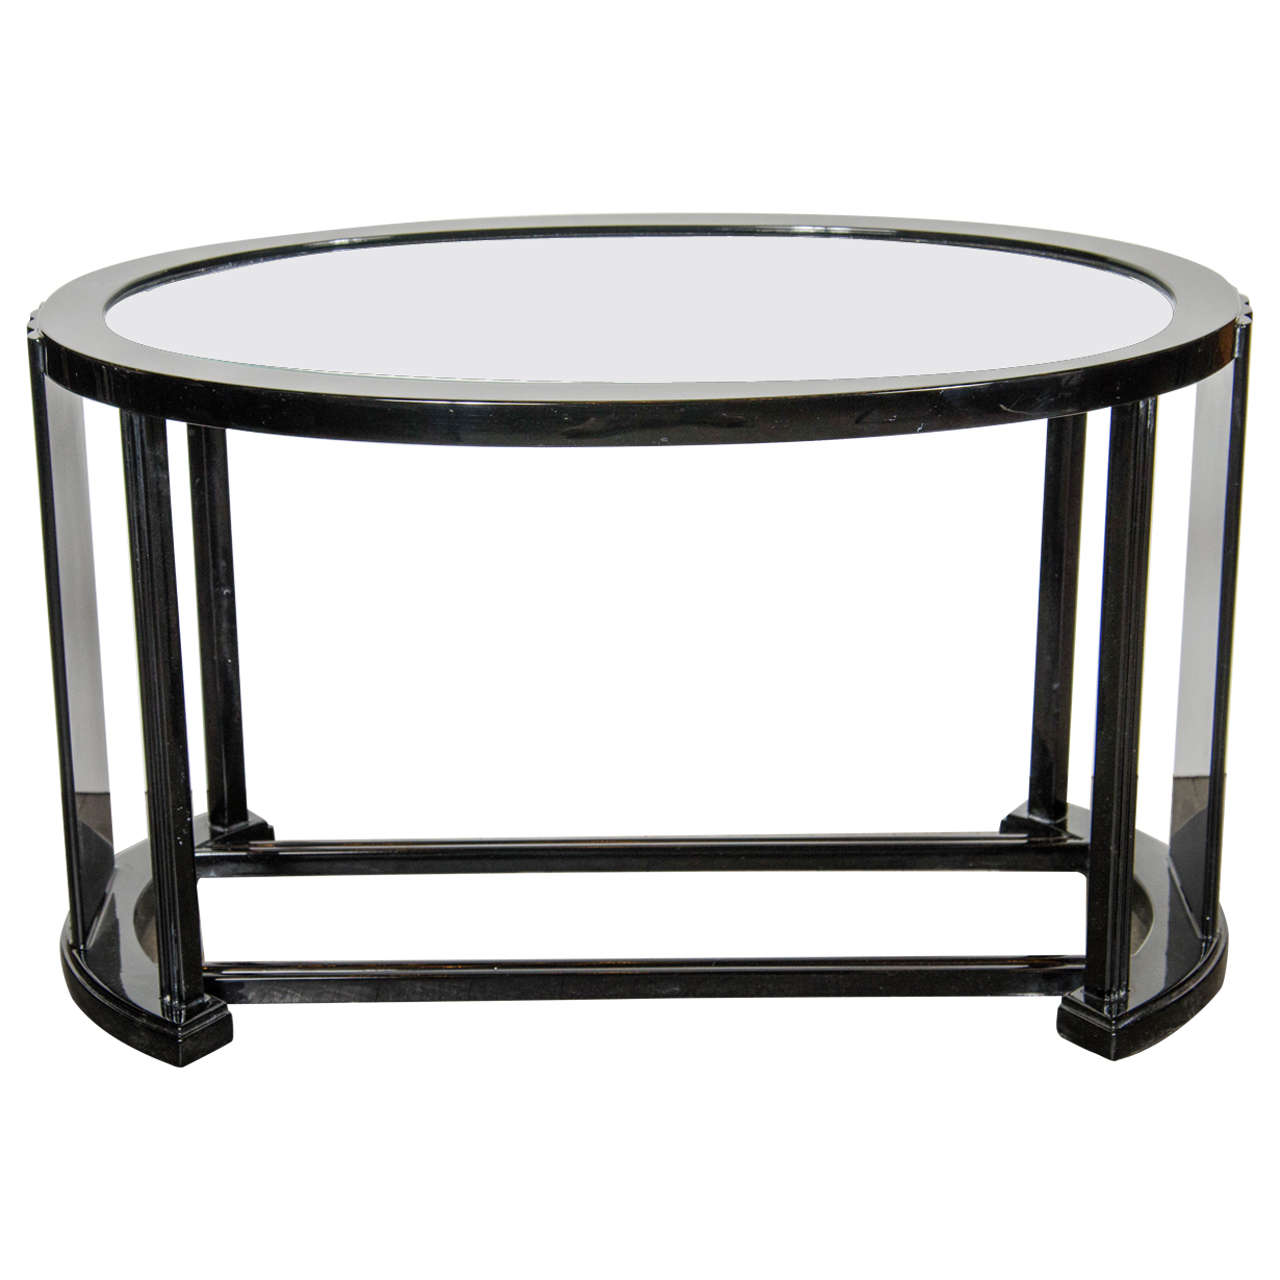 Art deco bauhaus style cocktail or occasional table in Vogue coffee table